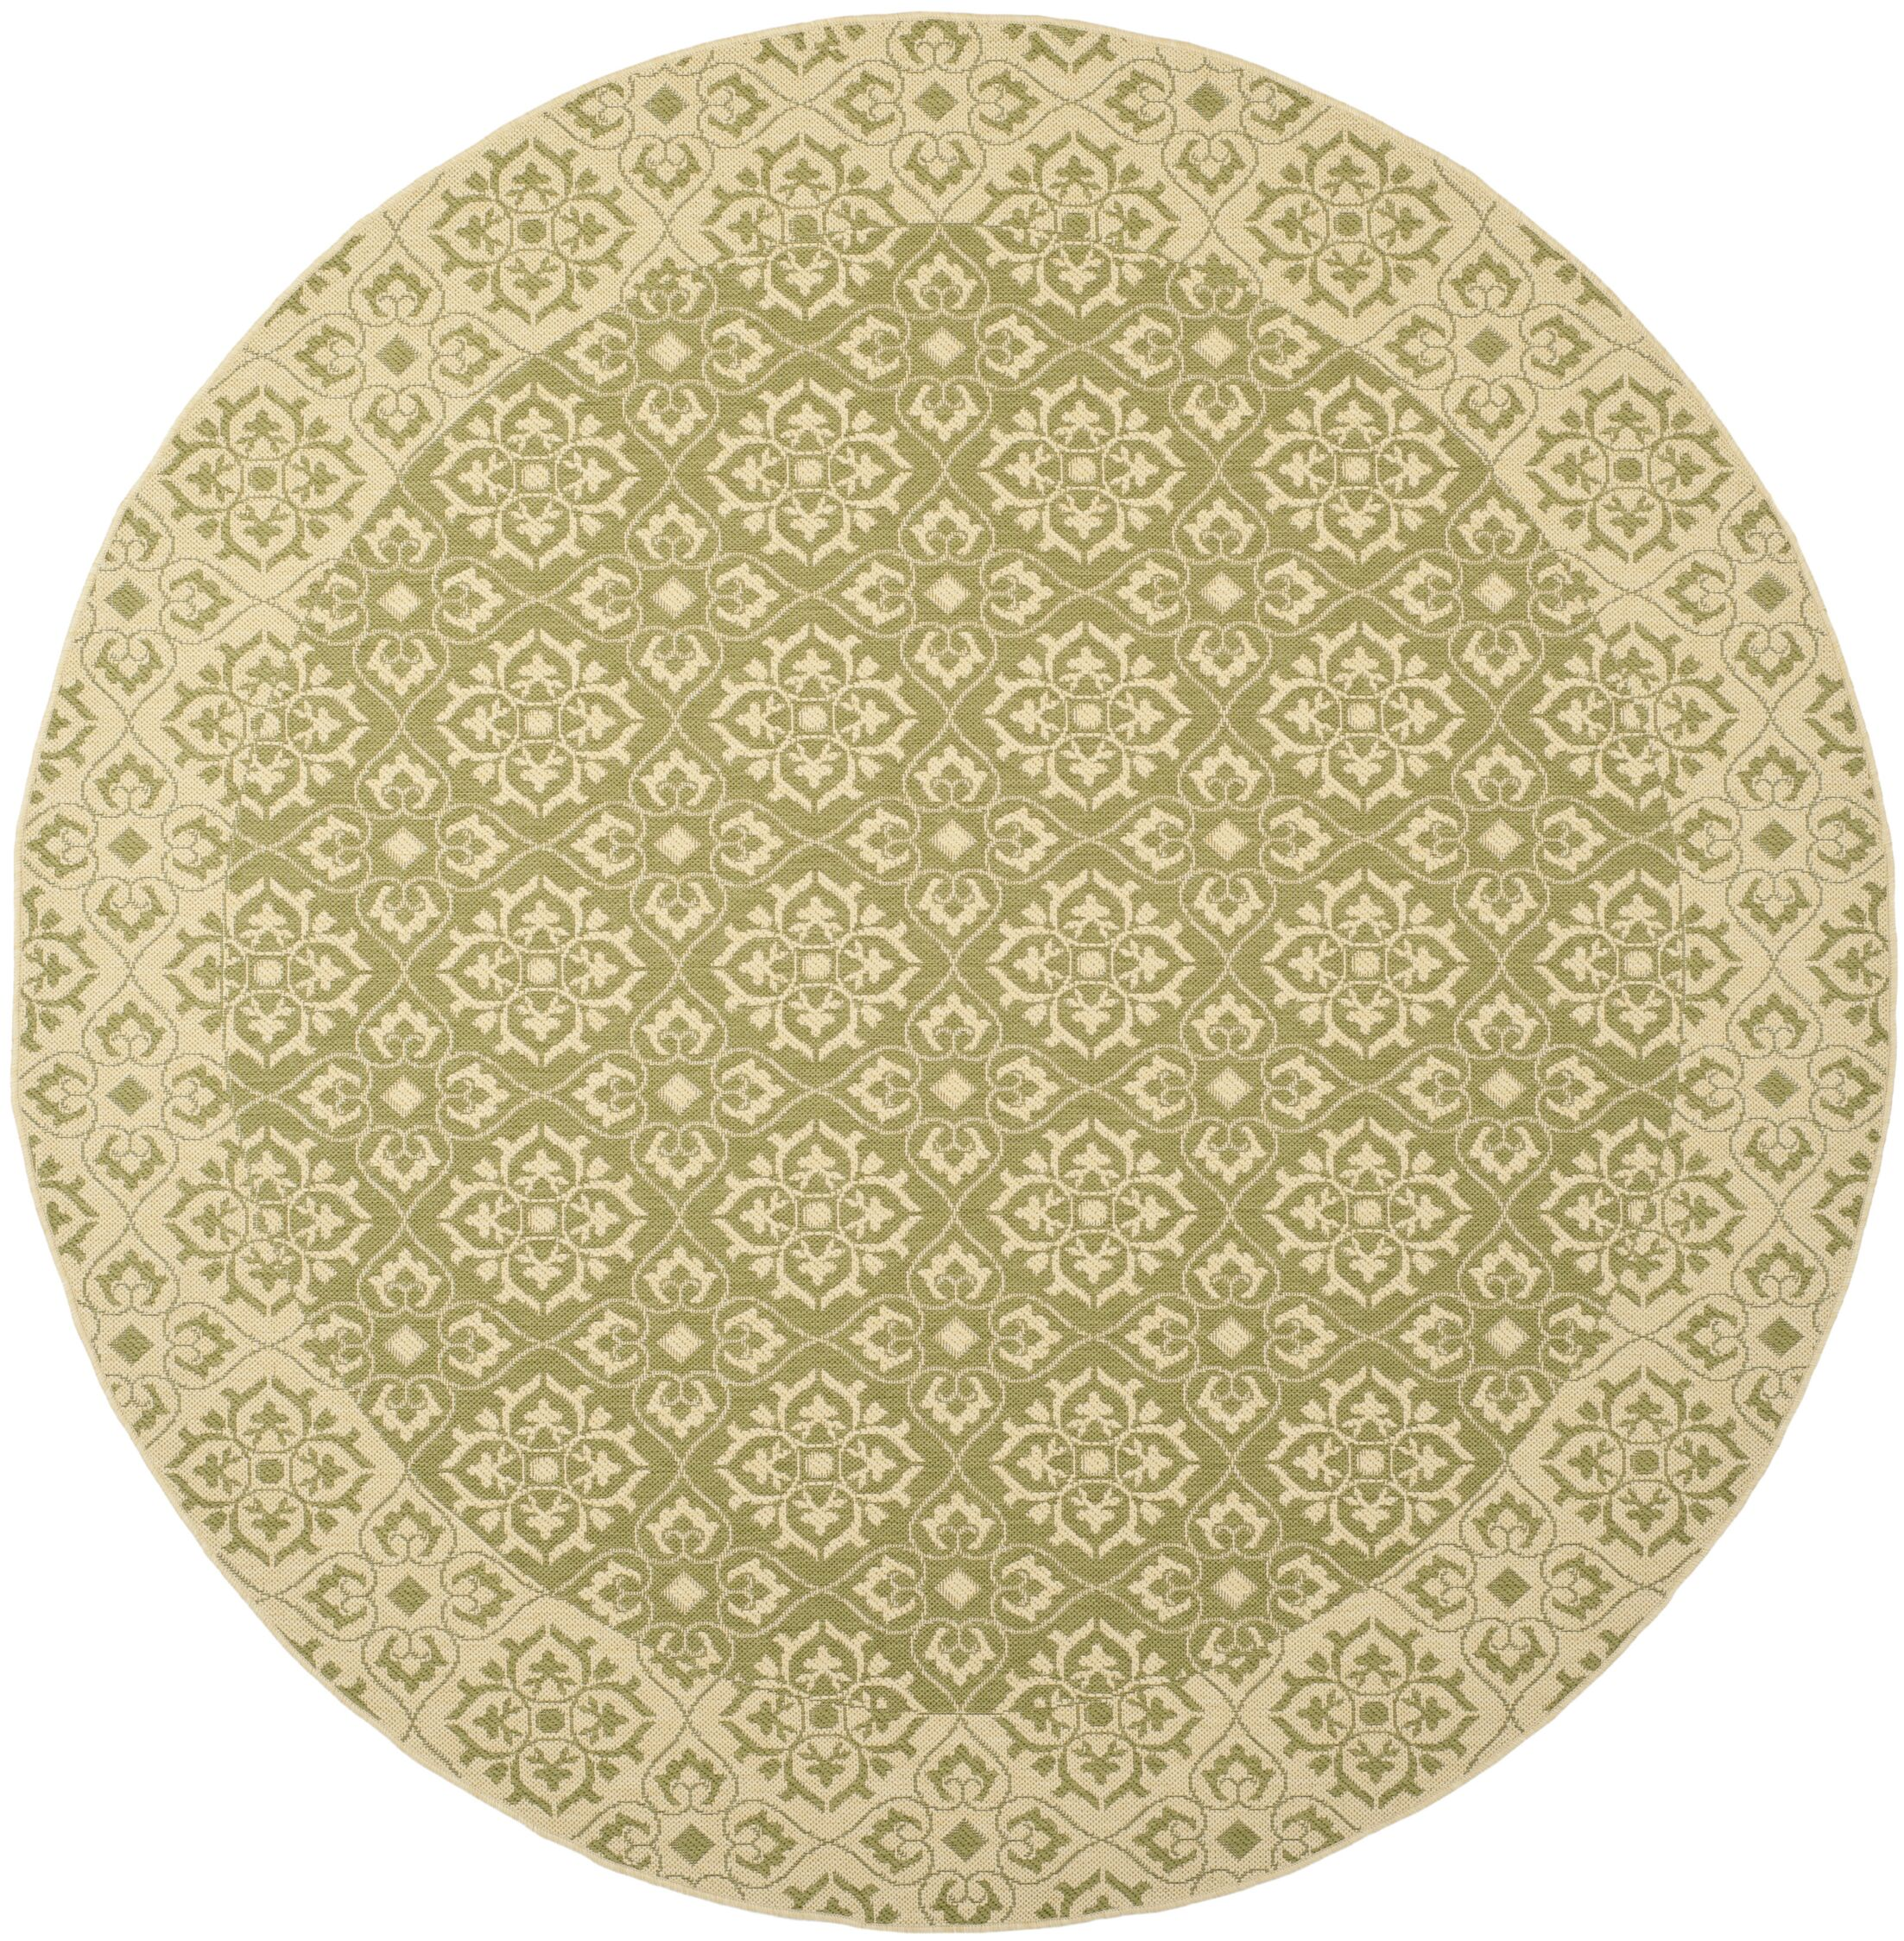 Lynn Green/Creme Outdoor Area Rug Rug Size: Round 7'10